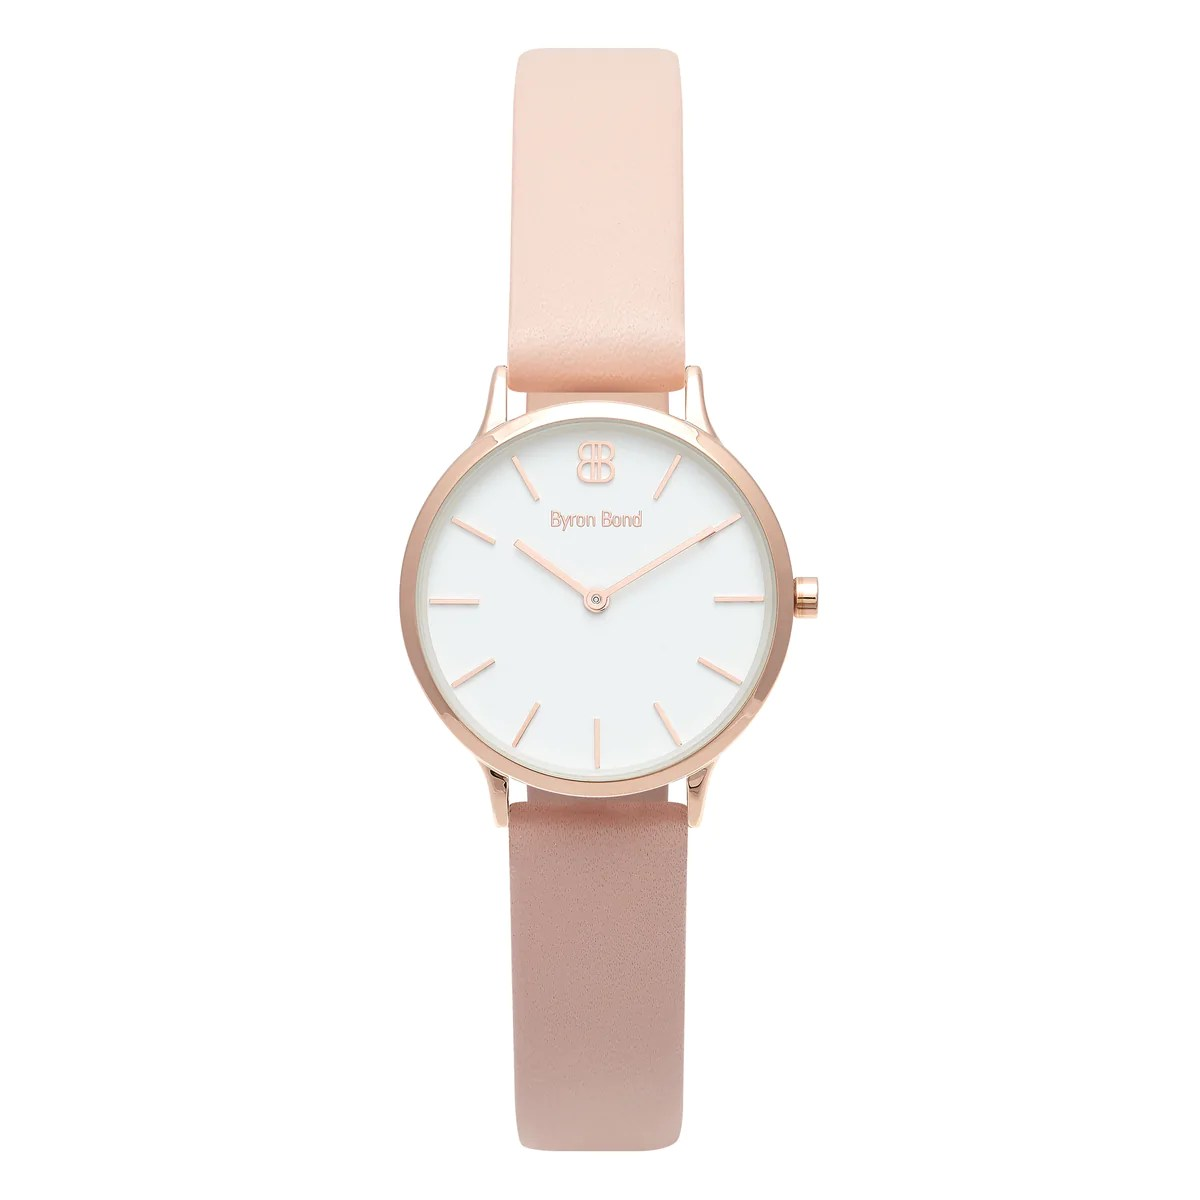 Leather Strap Rose Gold Watch Women S Small Rose Gold Watch White Dial Pink Leather Strap Mark 5 Victoria 32mm